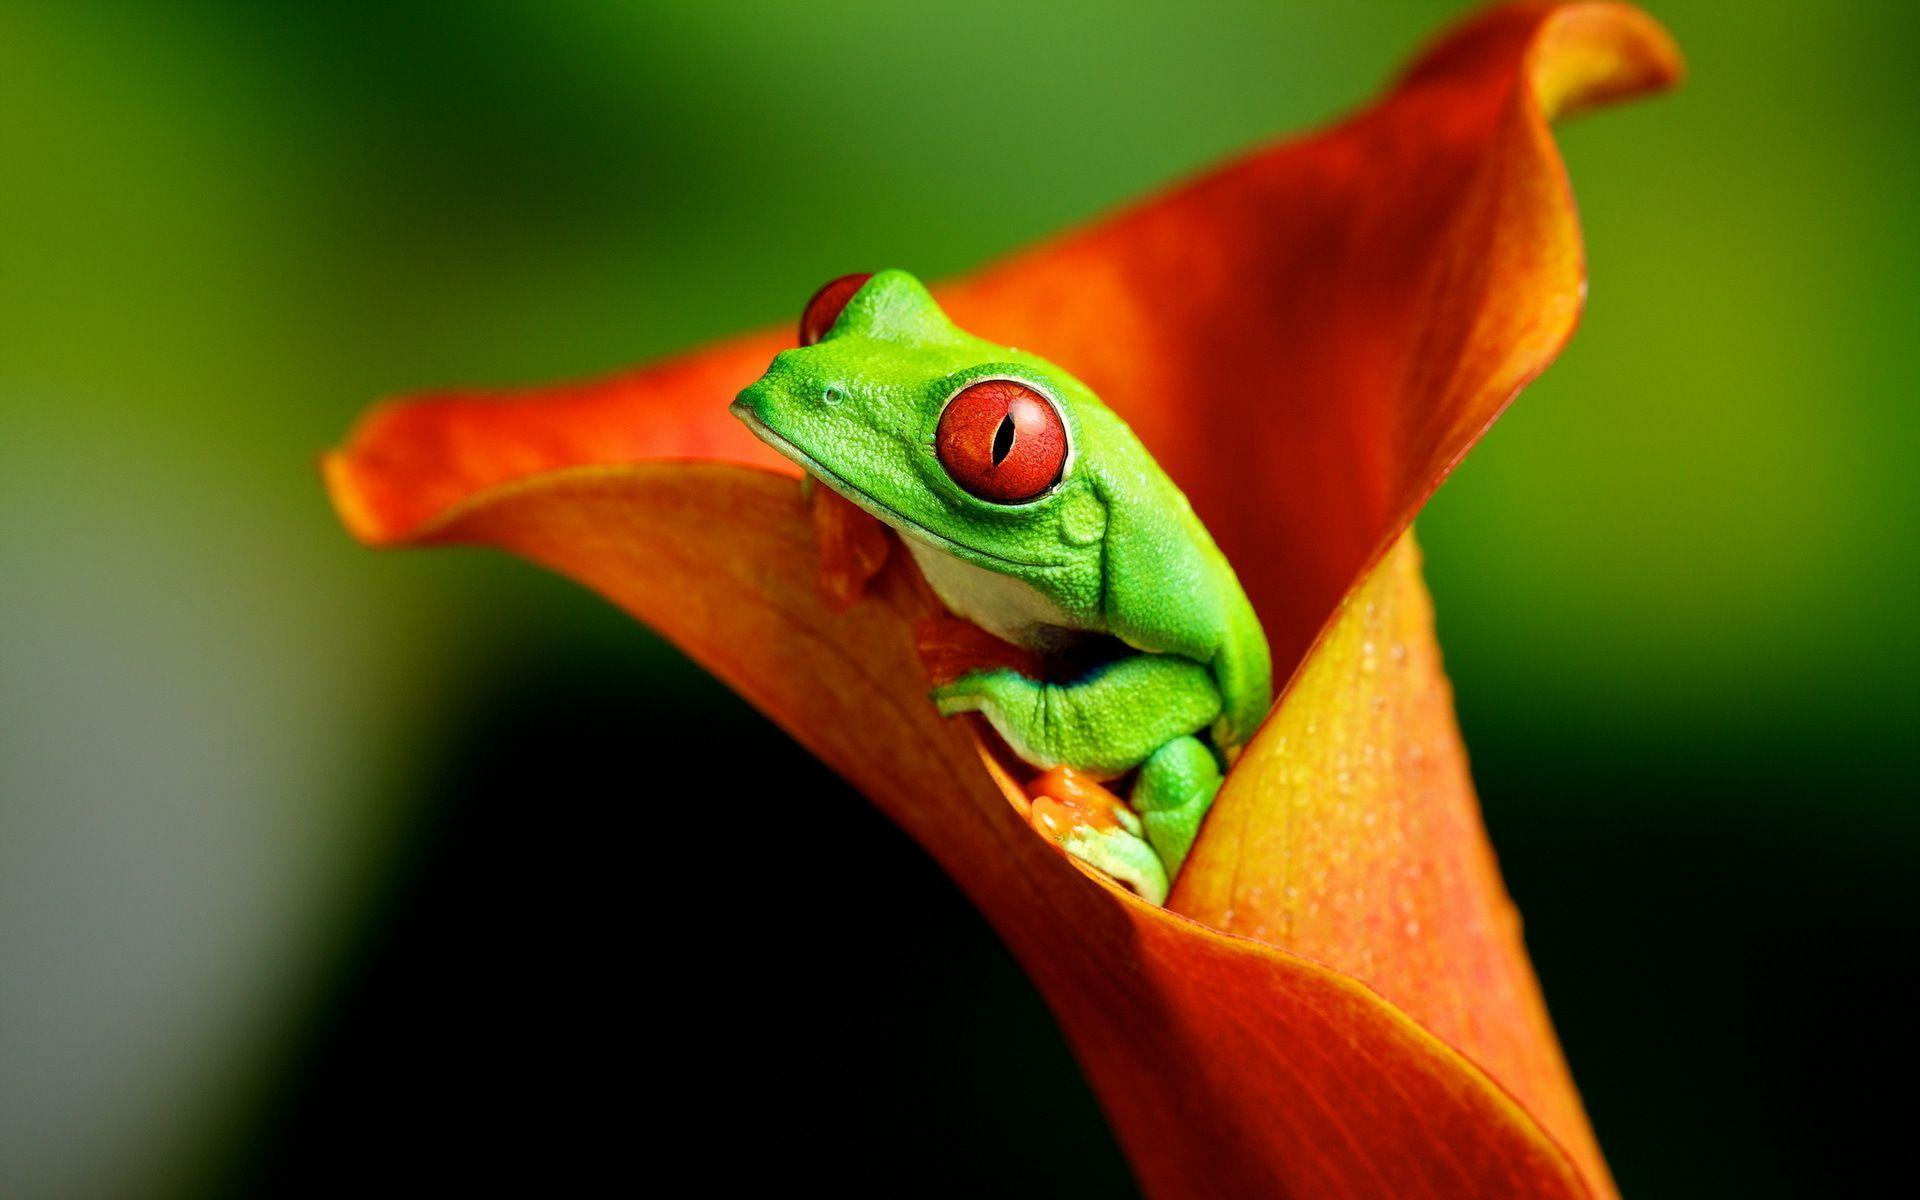 Frog Wallpapers 11916 1920x1200 px